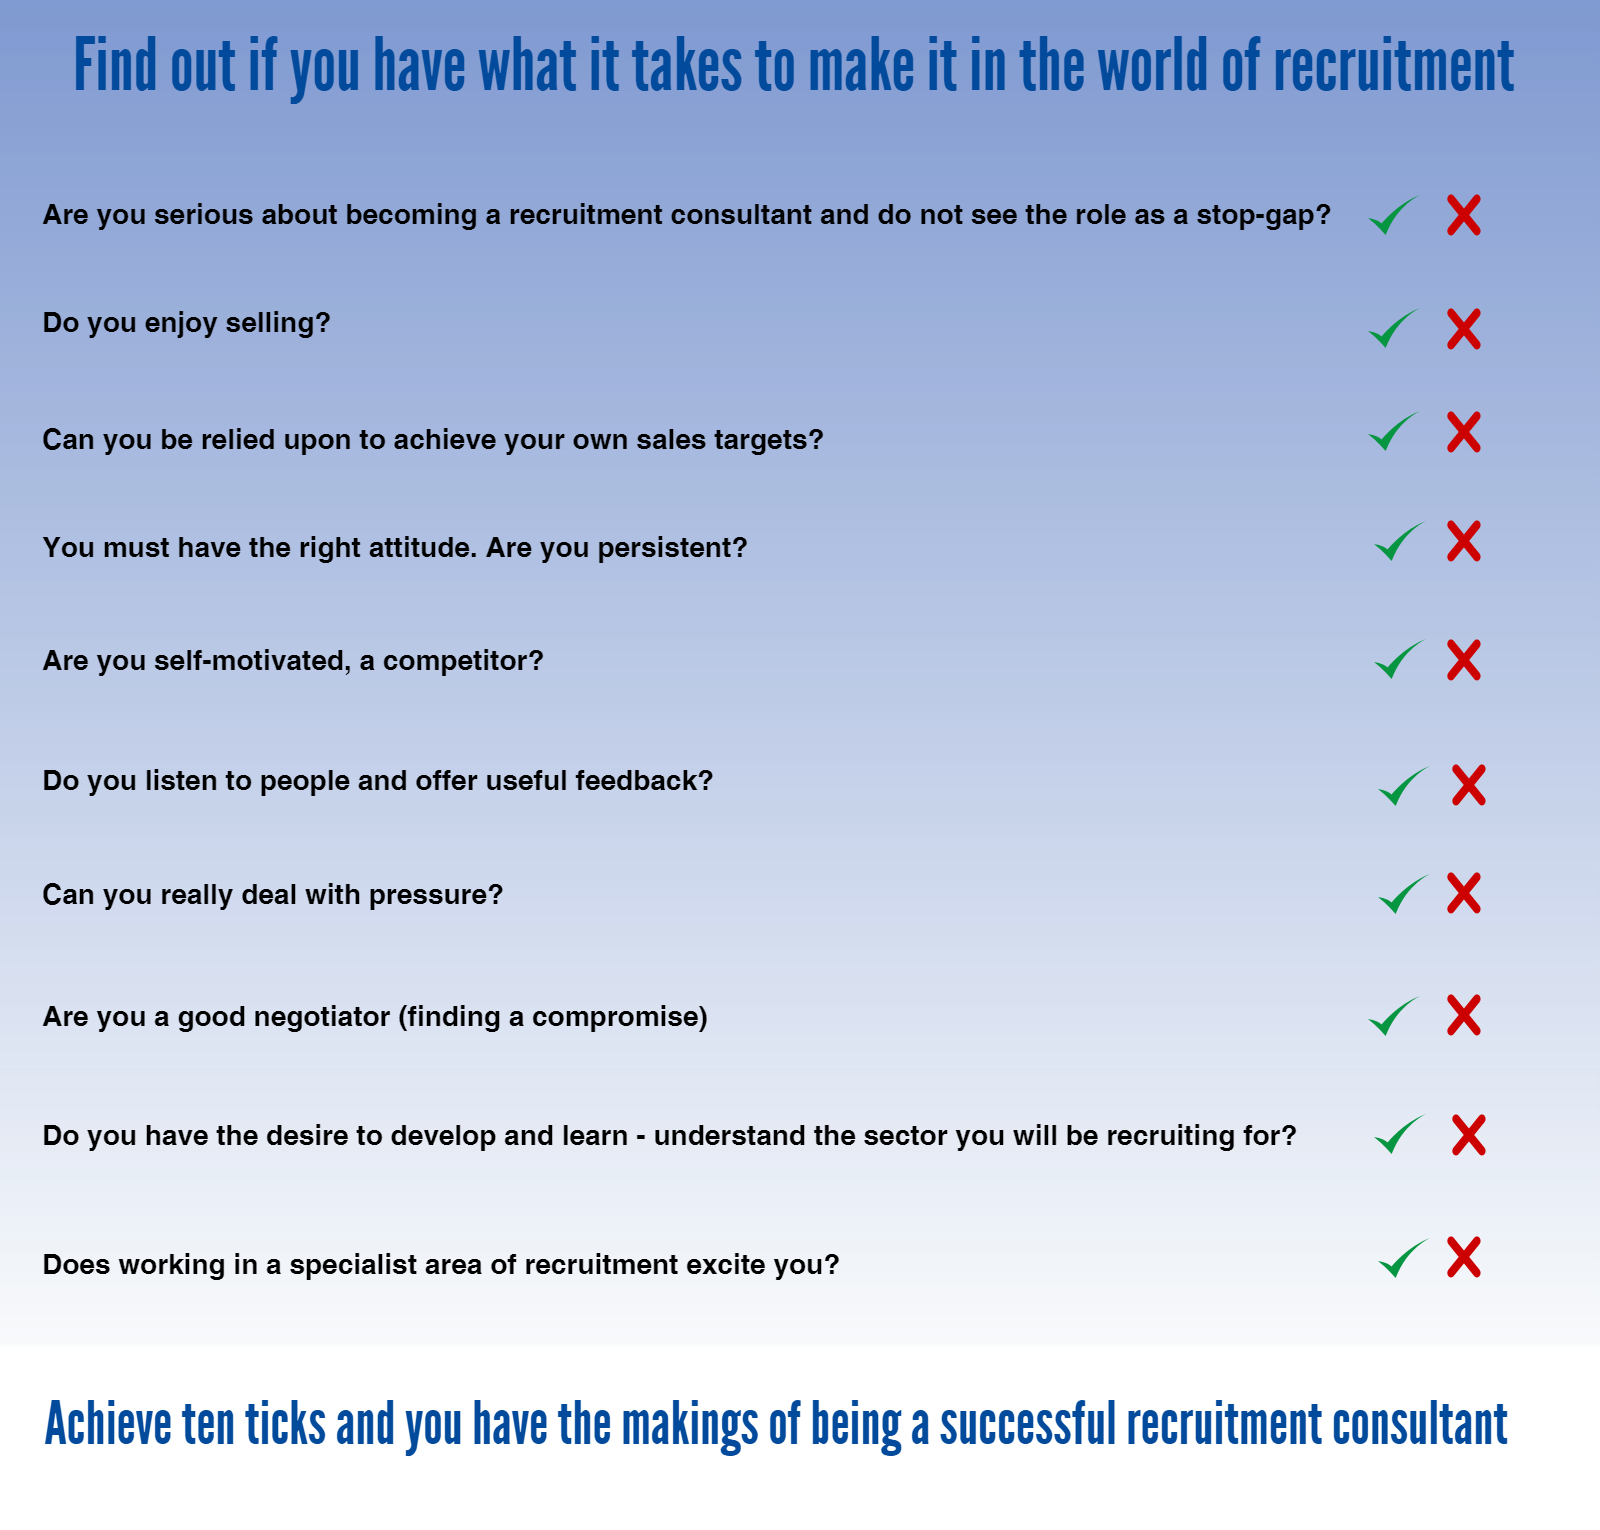 How to Succeed As a Recruitment Consultant: 9 Steps